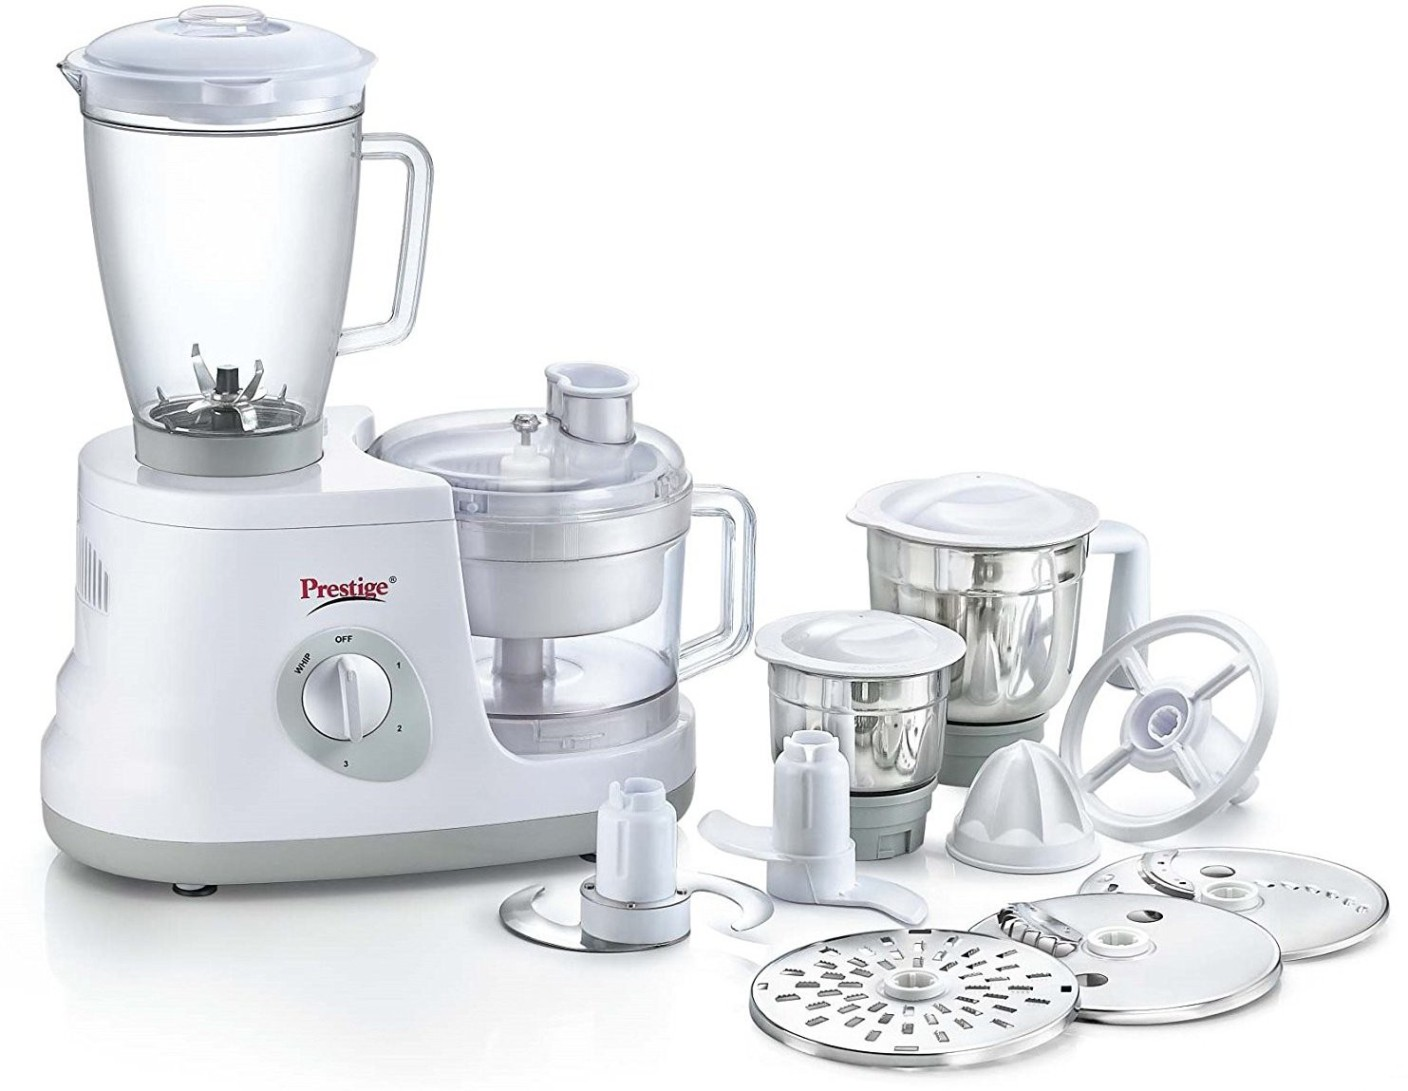 Prestige all round 600 w food processor price in india for Cuisine prestige